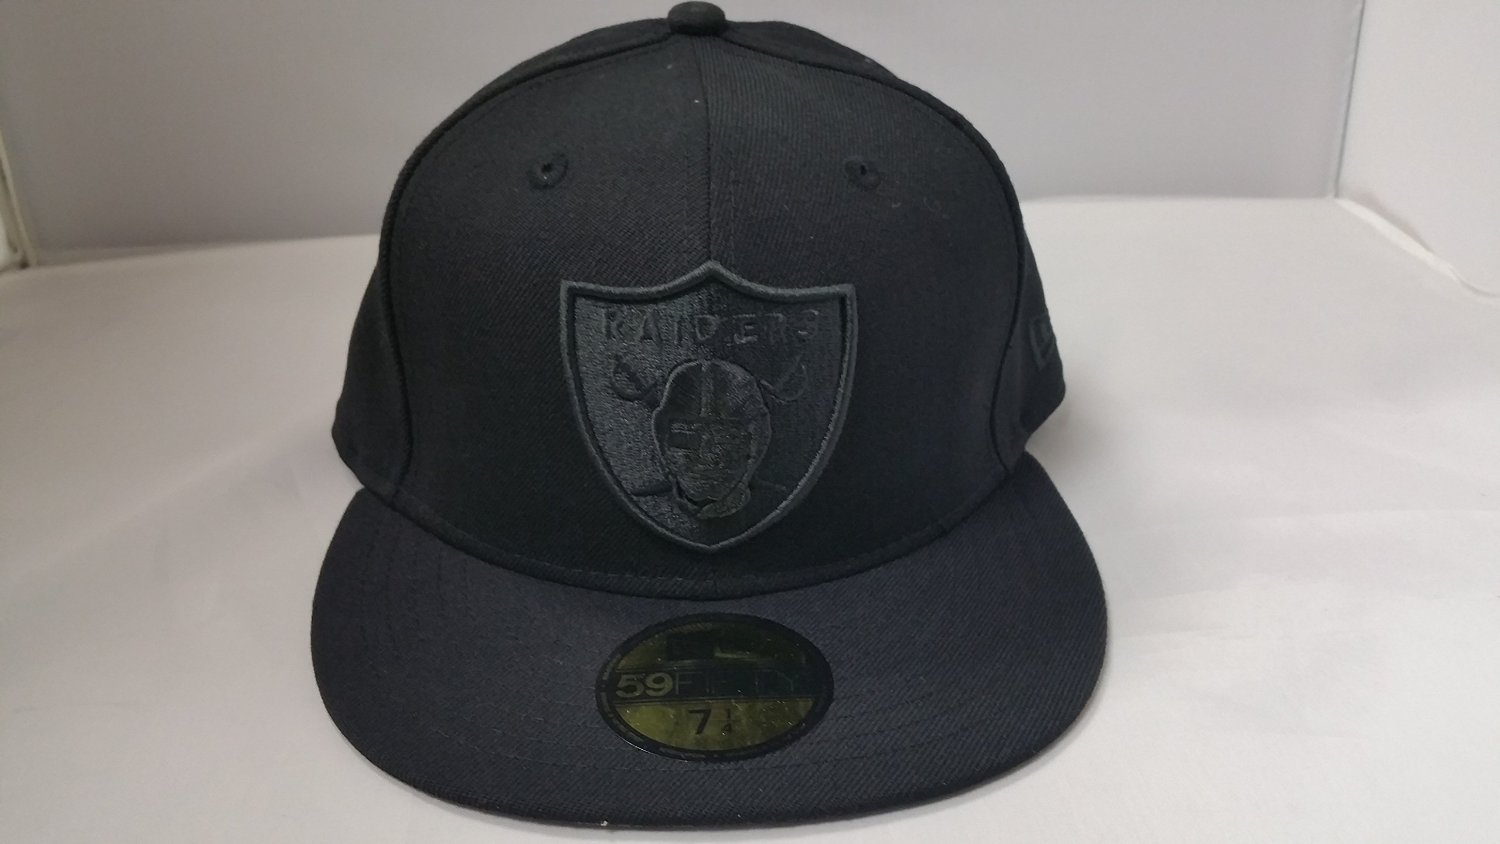 8e0b82caaa0 Get Quotations · New Era NFL Oakland Raiders All Black Shield Logo Fitted  Cap 59Fifty NewEra